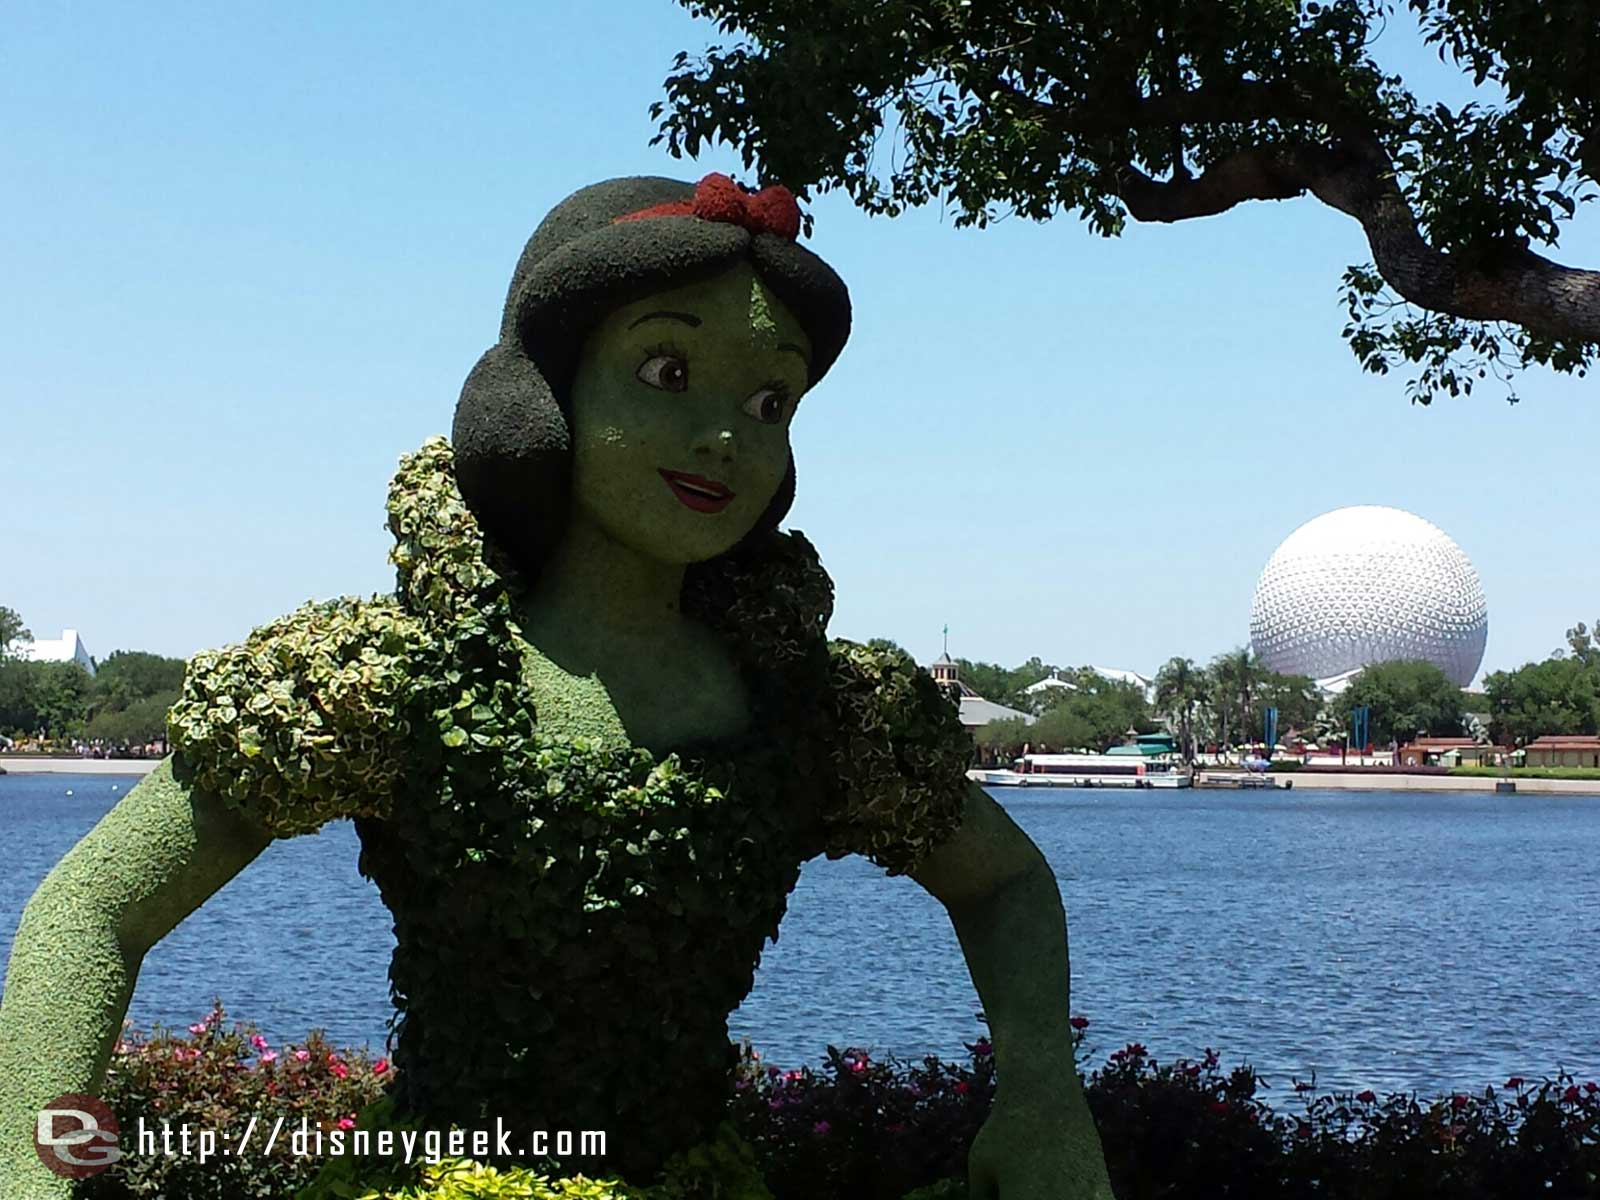 Snow White in Germany - Epcot International Flower & Garden Festival